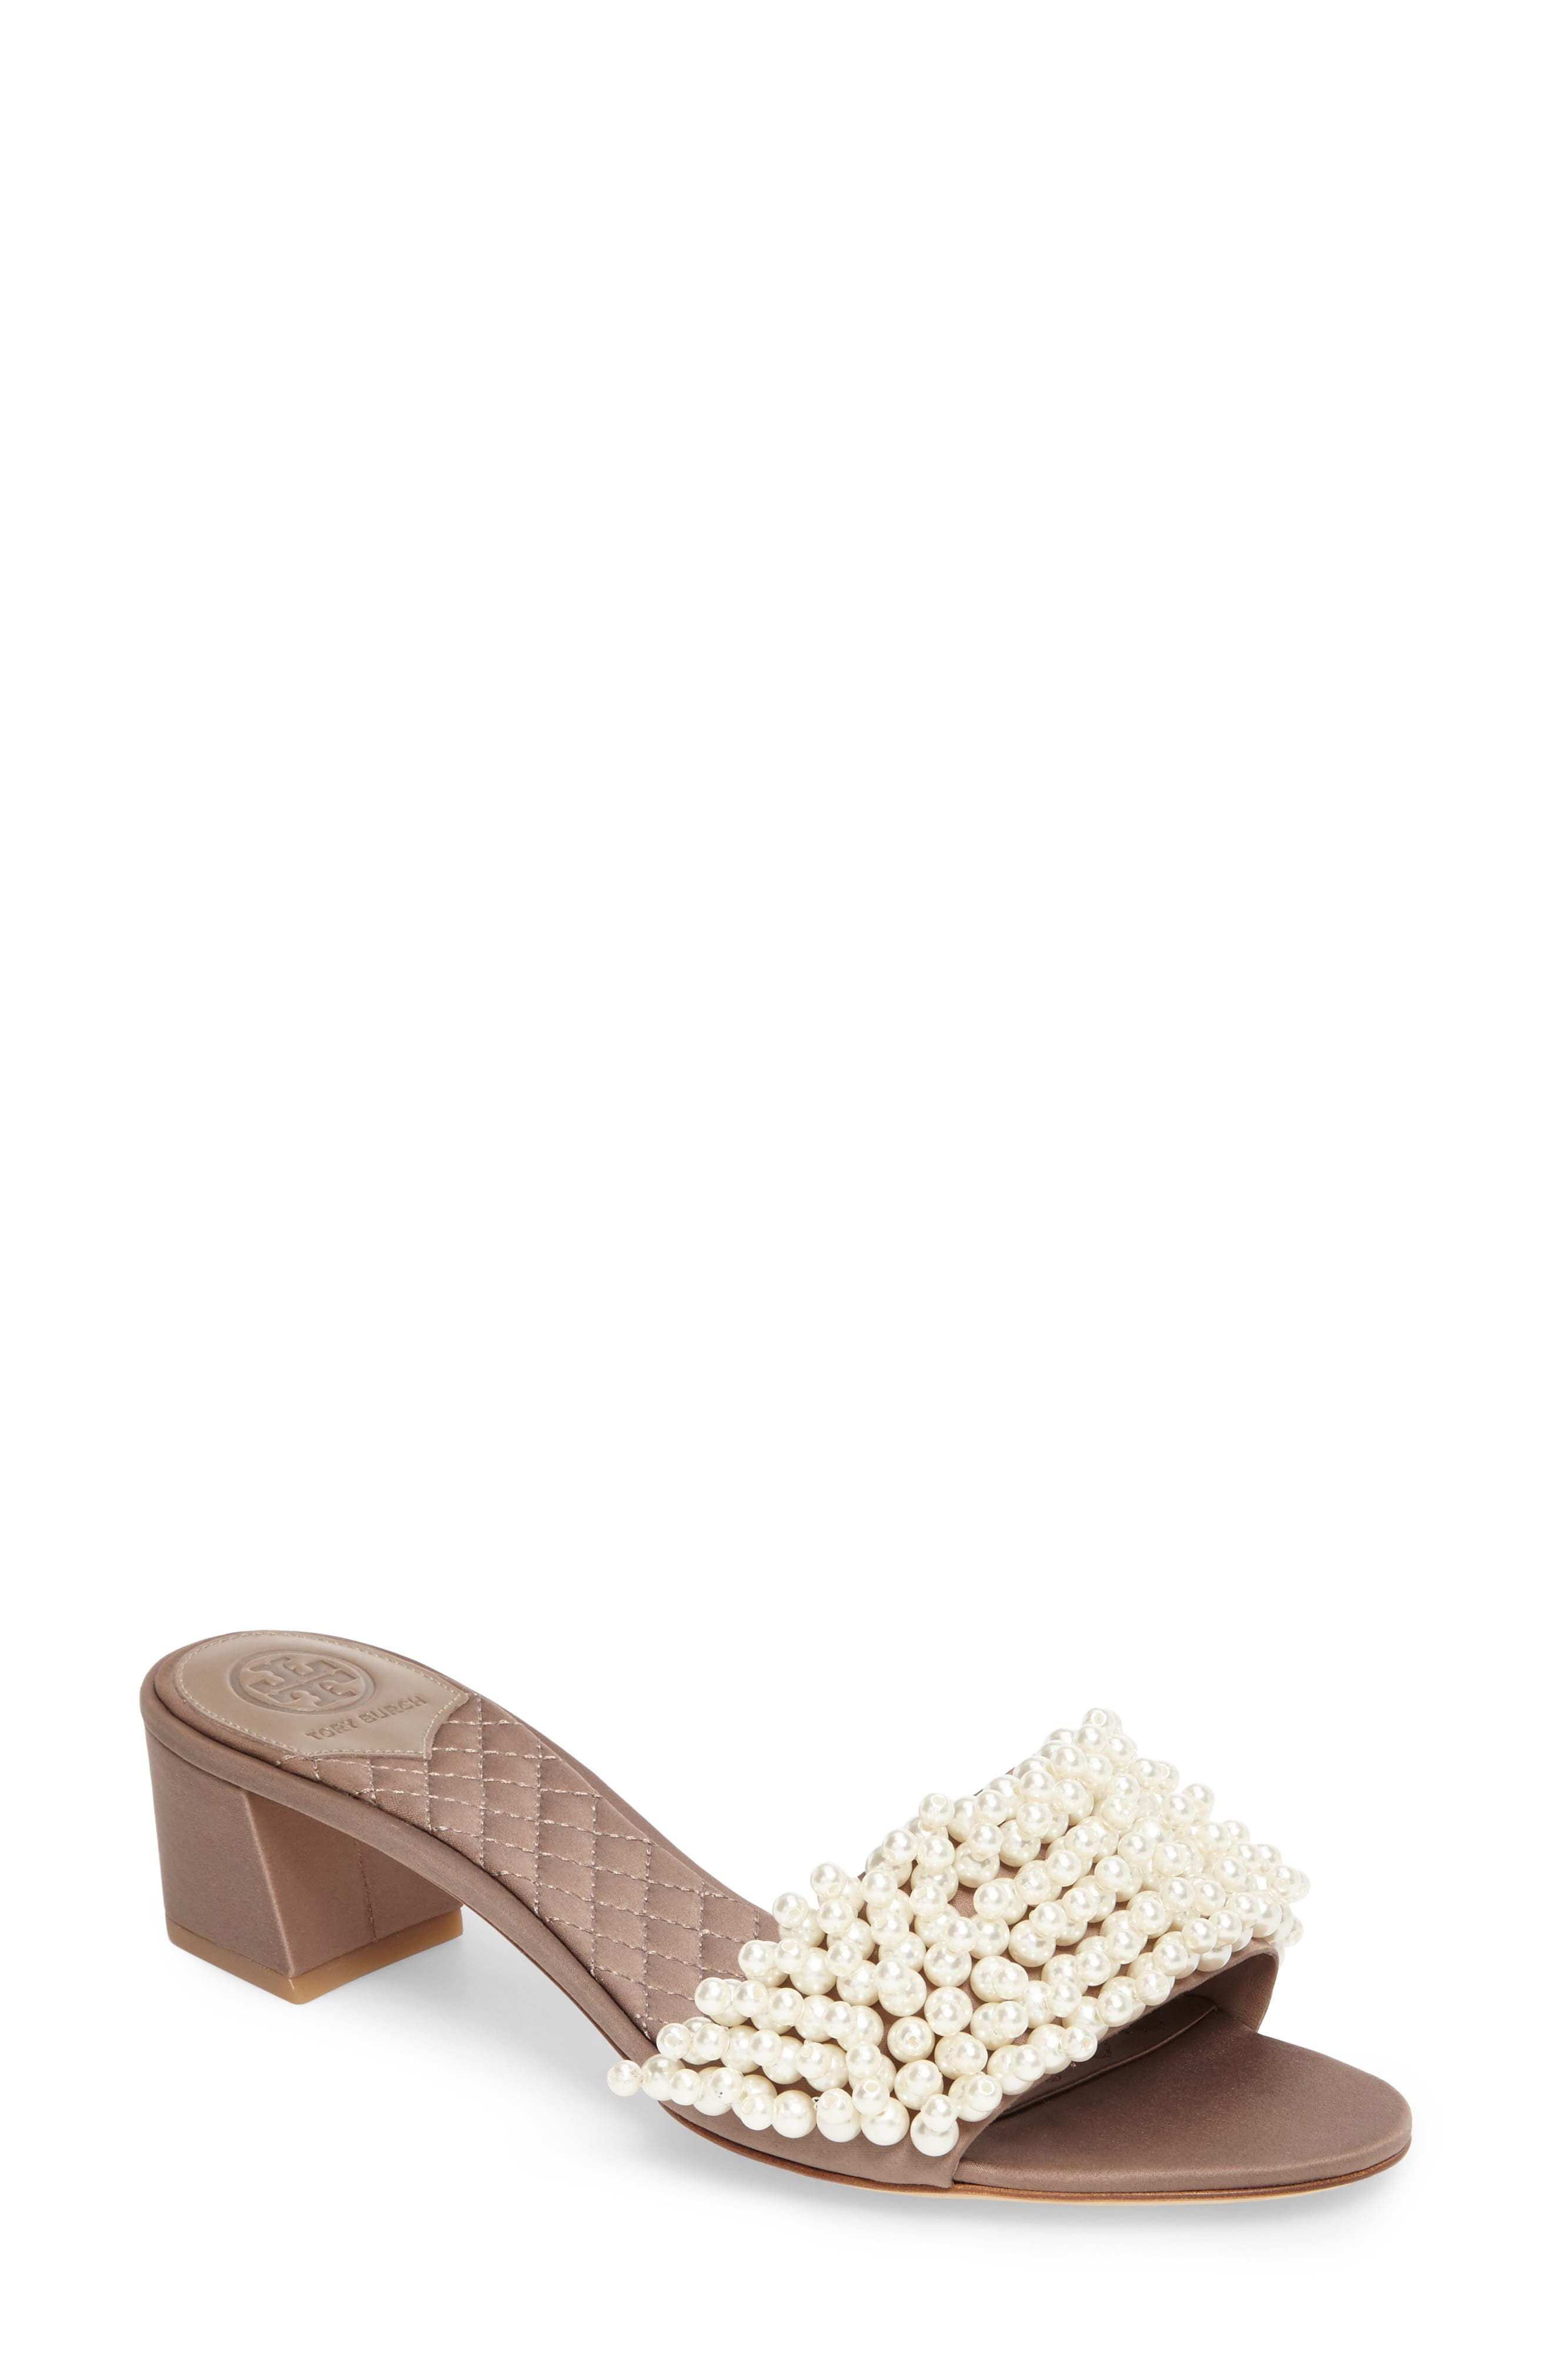 Tatiana Slide Sandal,                         Main,                         color, Dust Storm